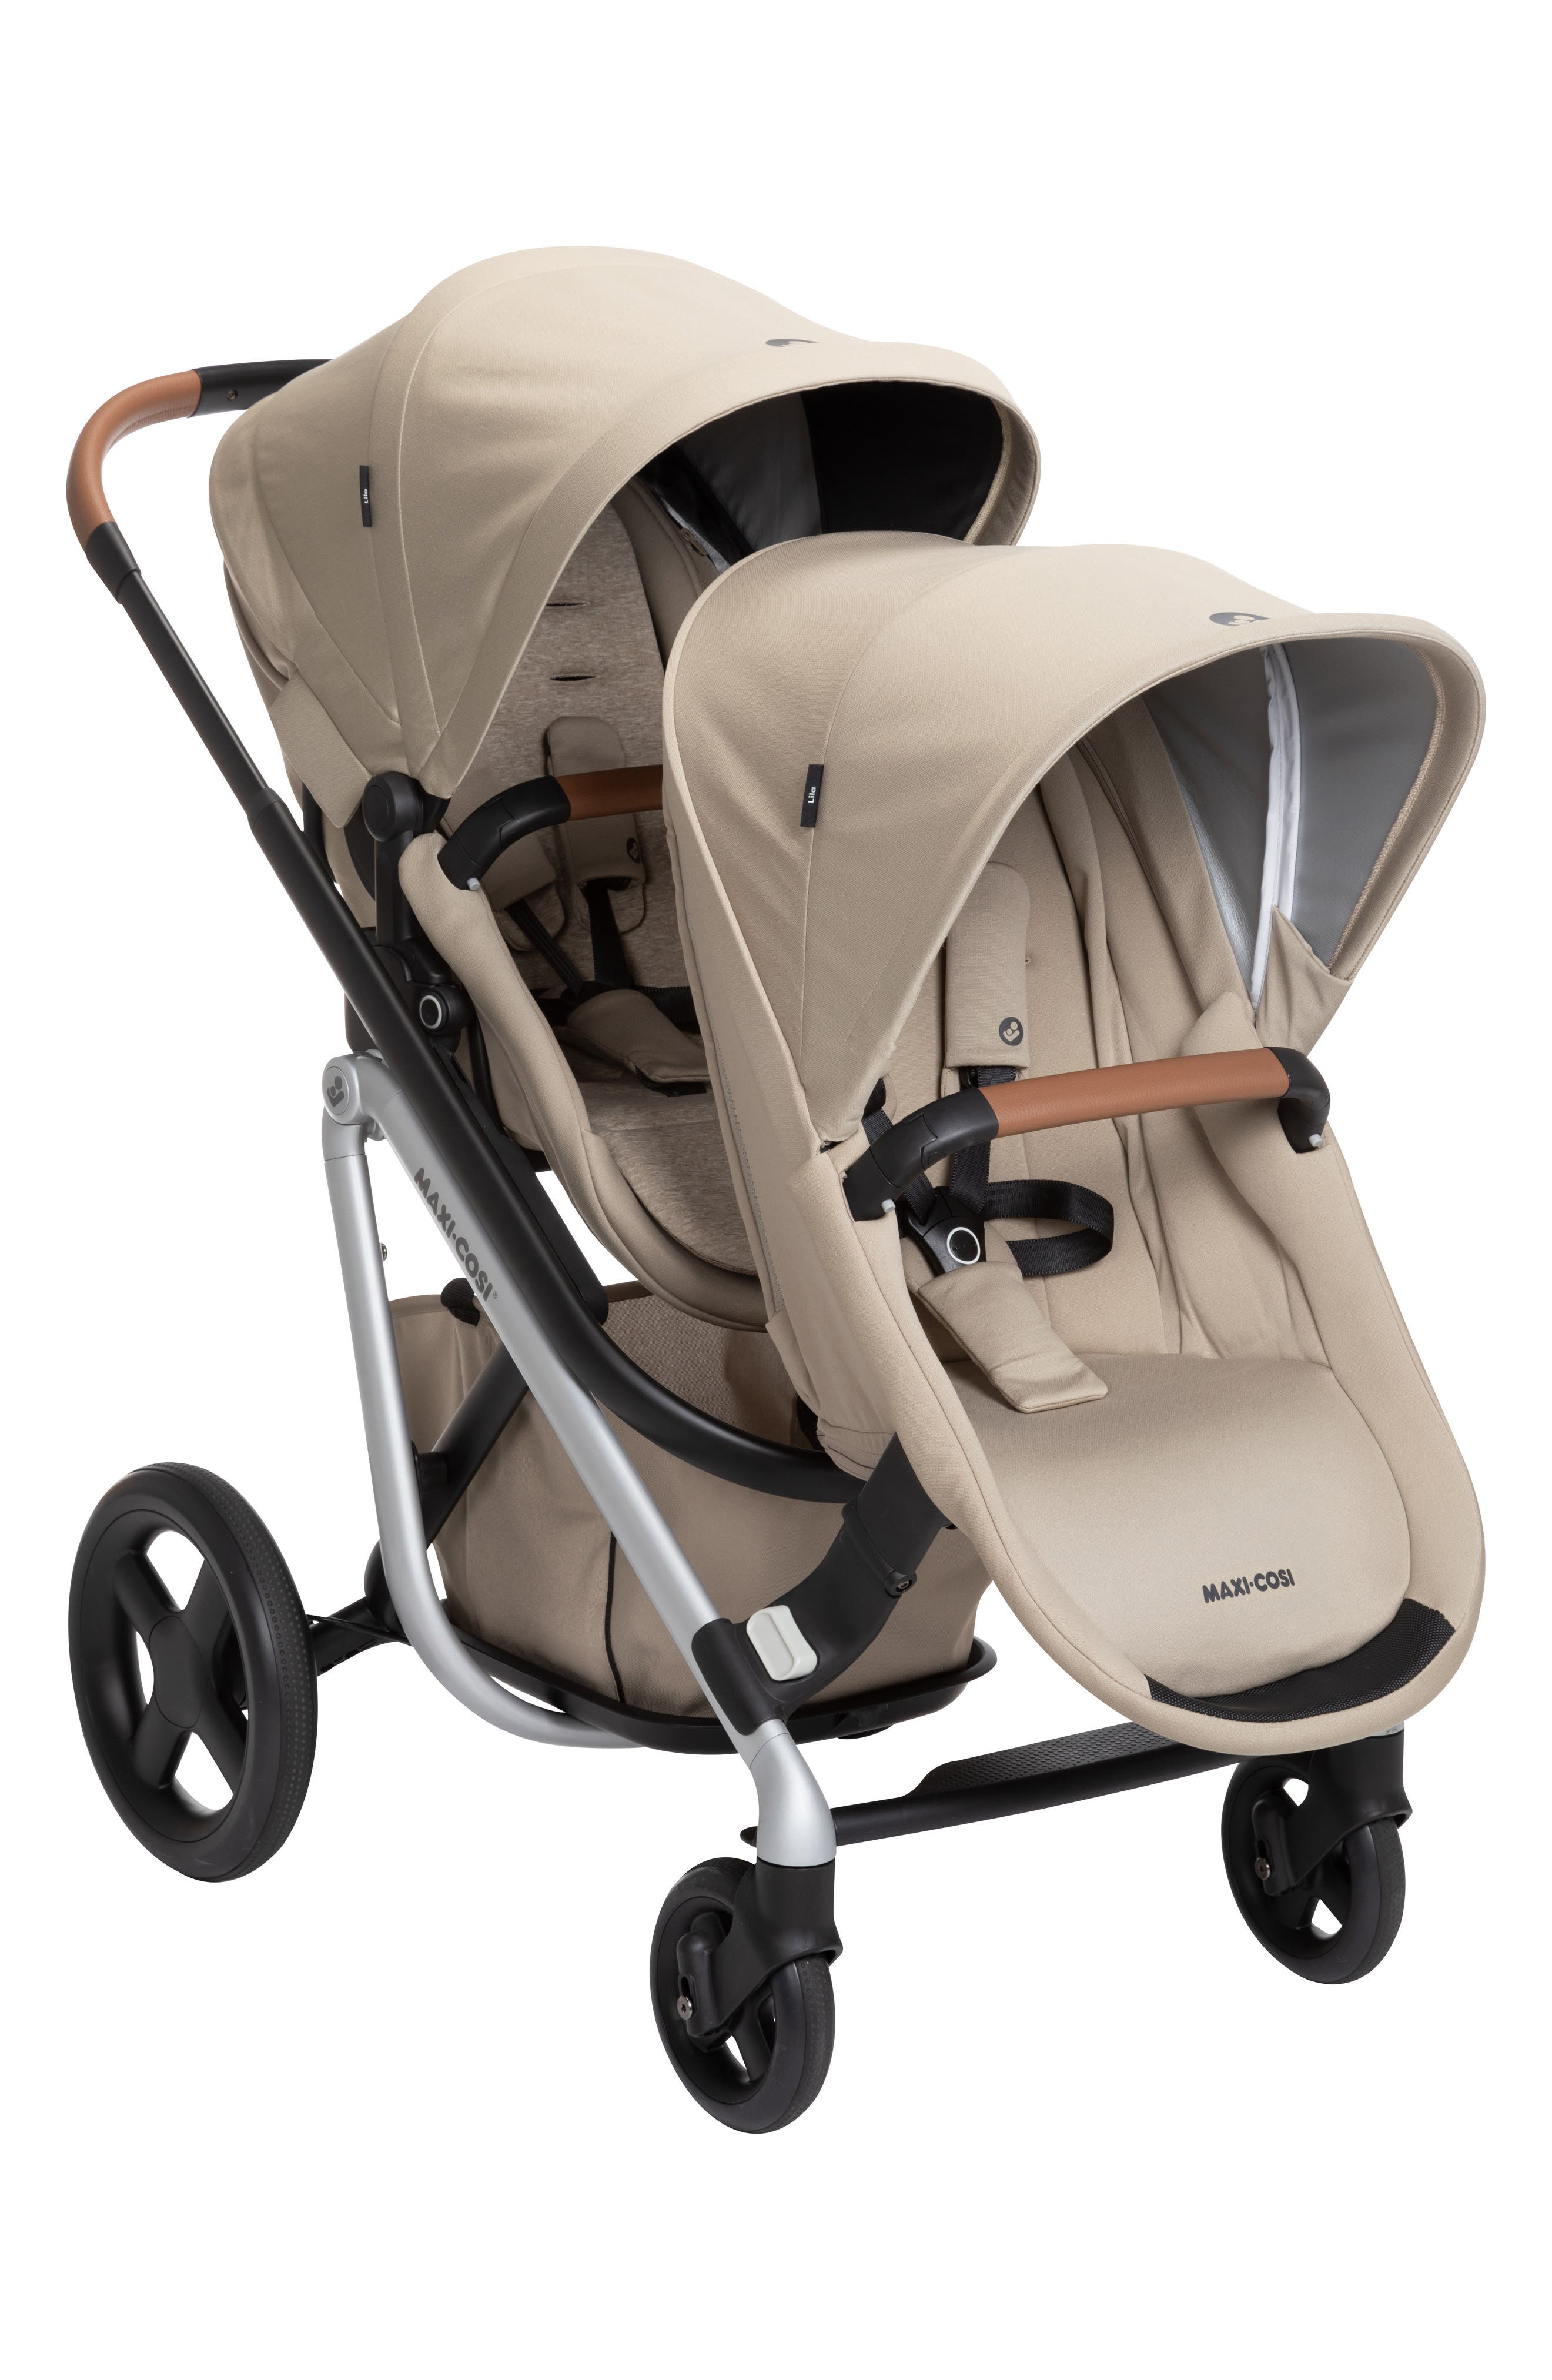 Infant MaxiCosi Lila Duo Sibling Seat Kit Size One Size  Beige